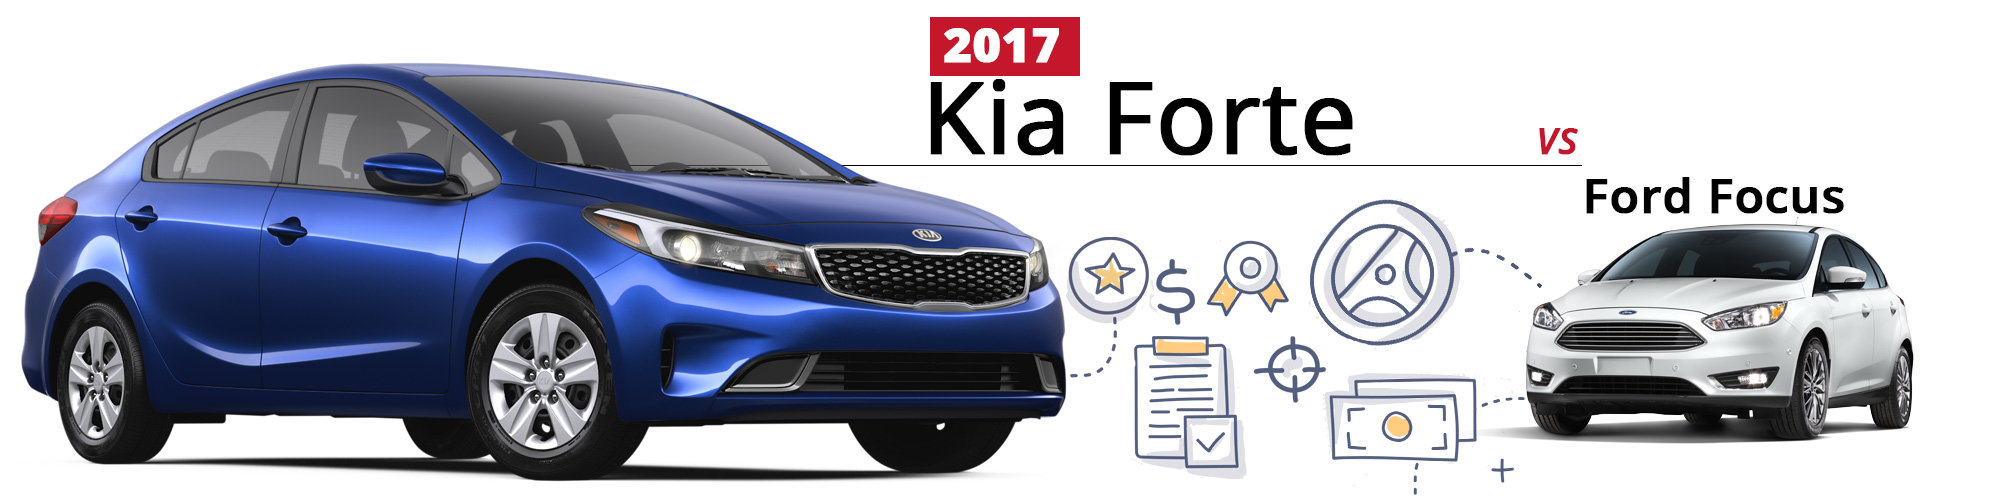 Kia Forte vs. Ford Focus